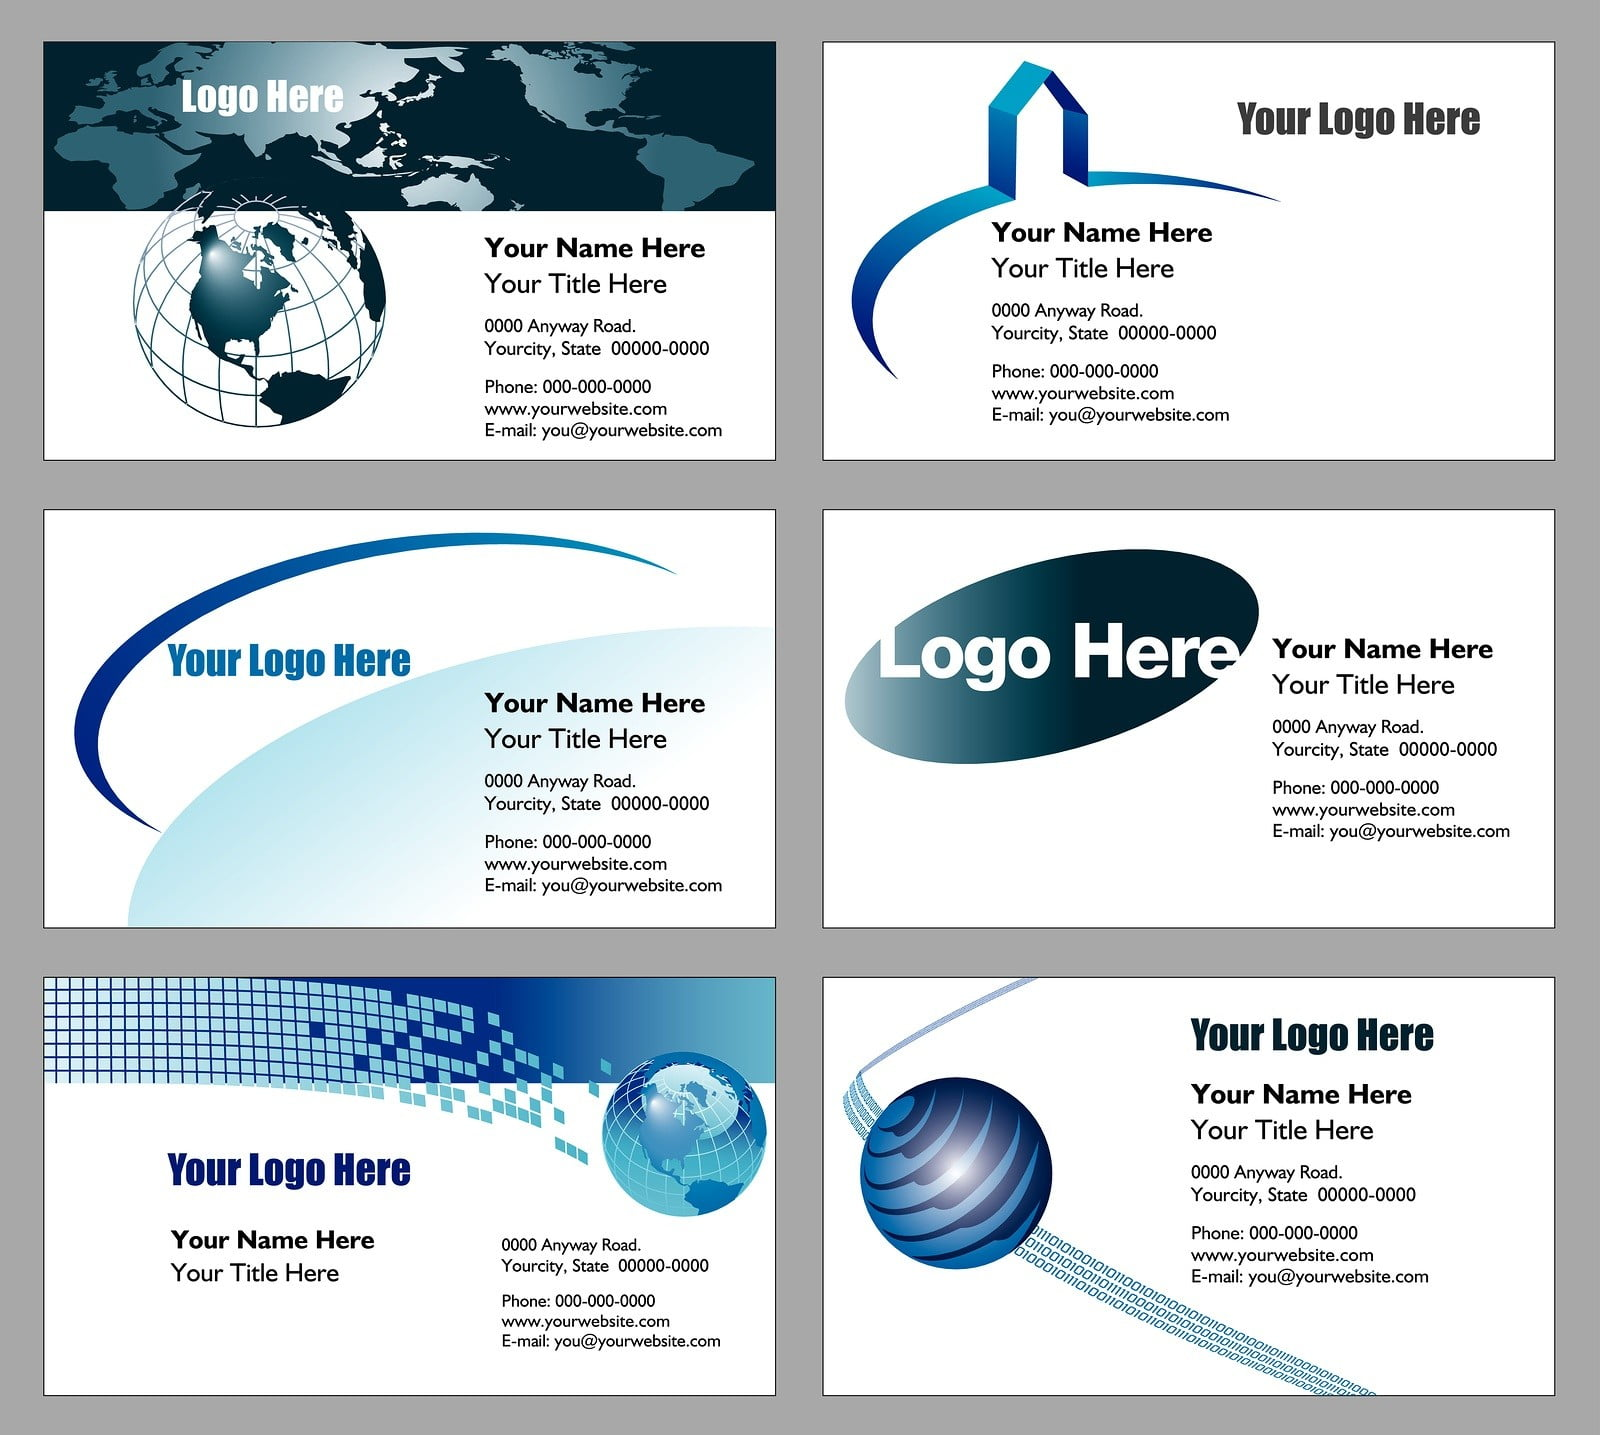 Inexpensive Business Cards That Make A Statement - Wilson Printing ...